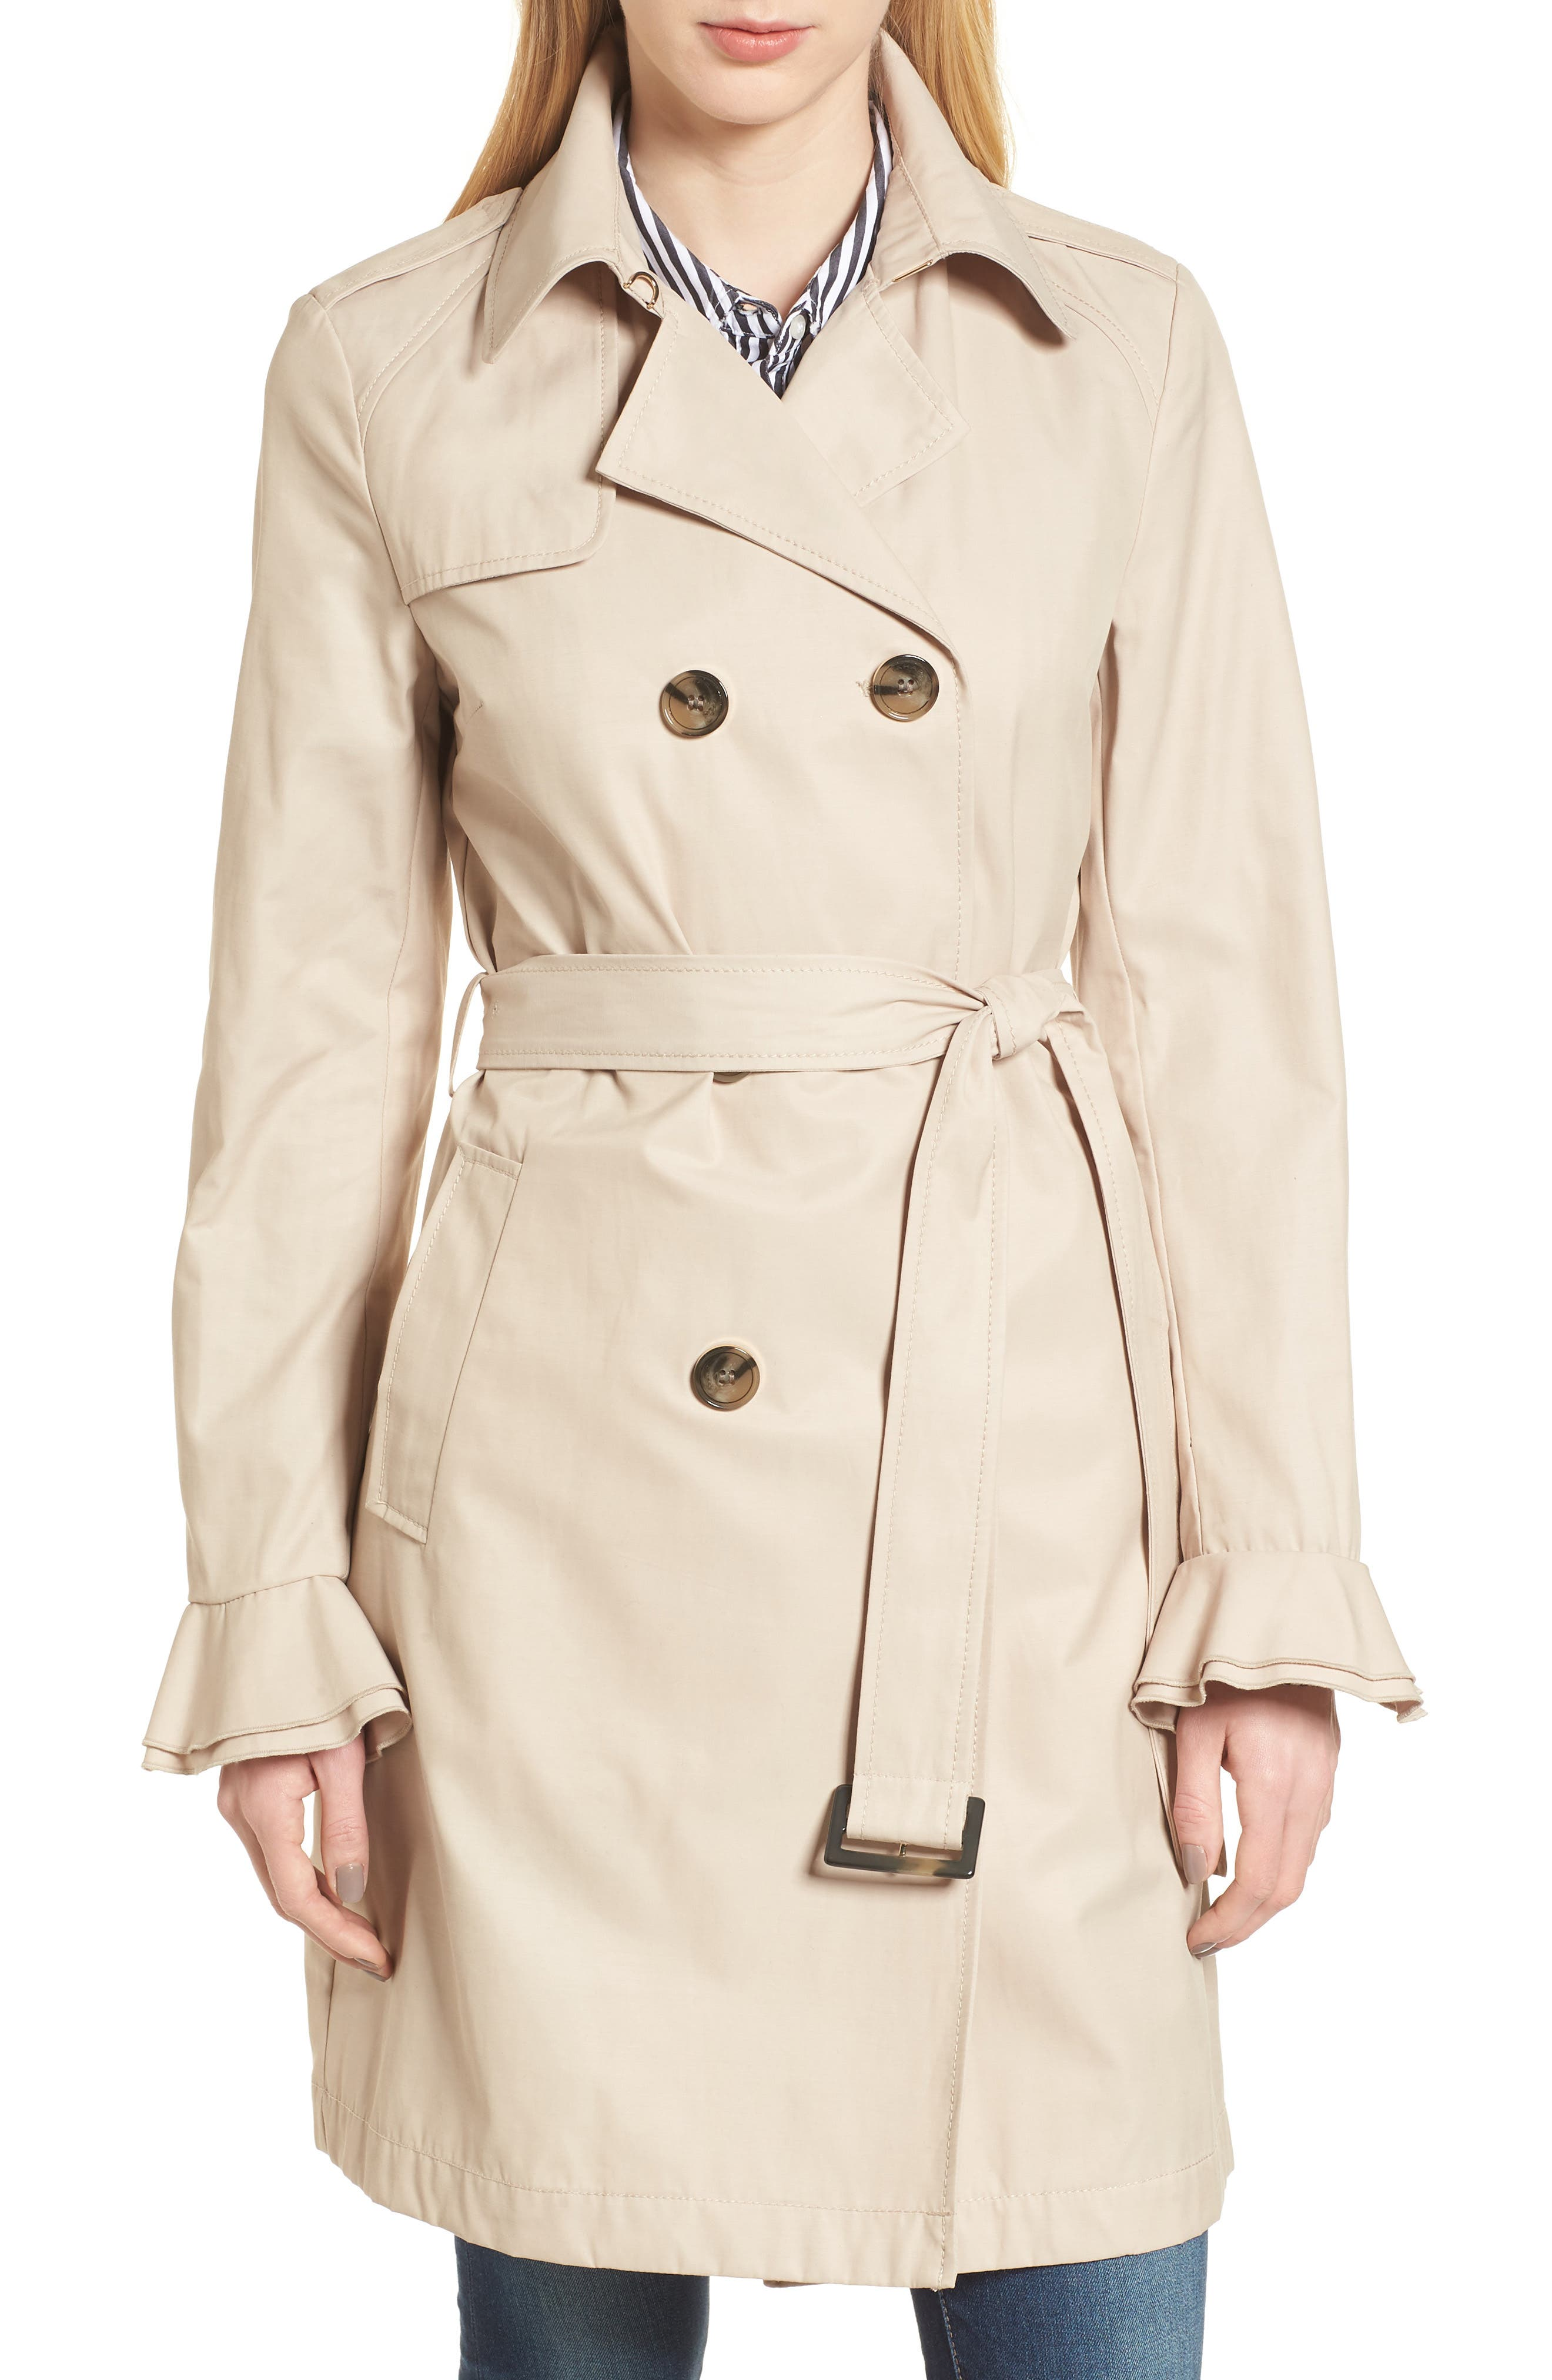 Stella Ruffle Sleeve Trench Coat,                         Main,                         color, 250